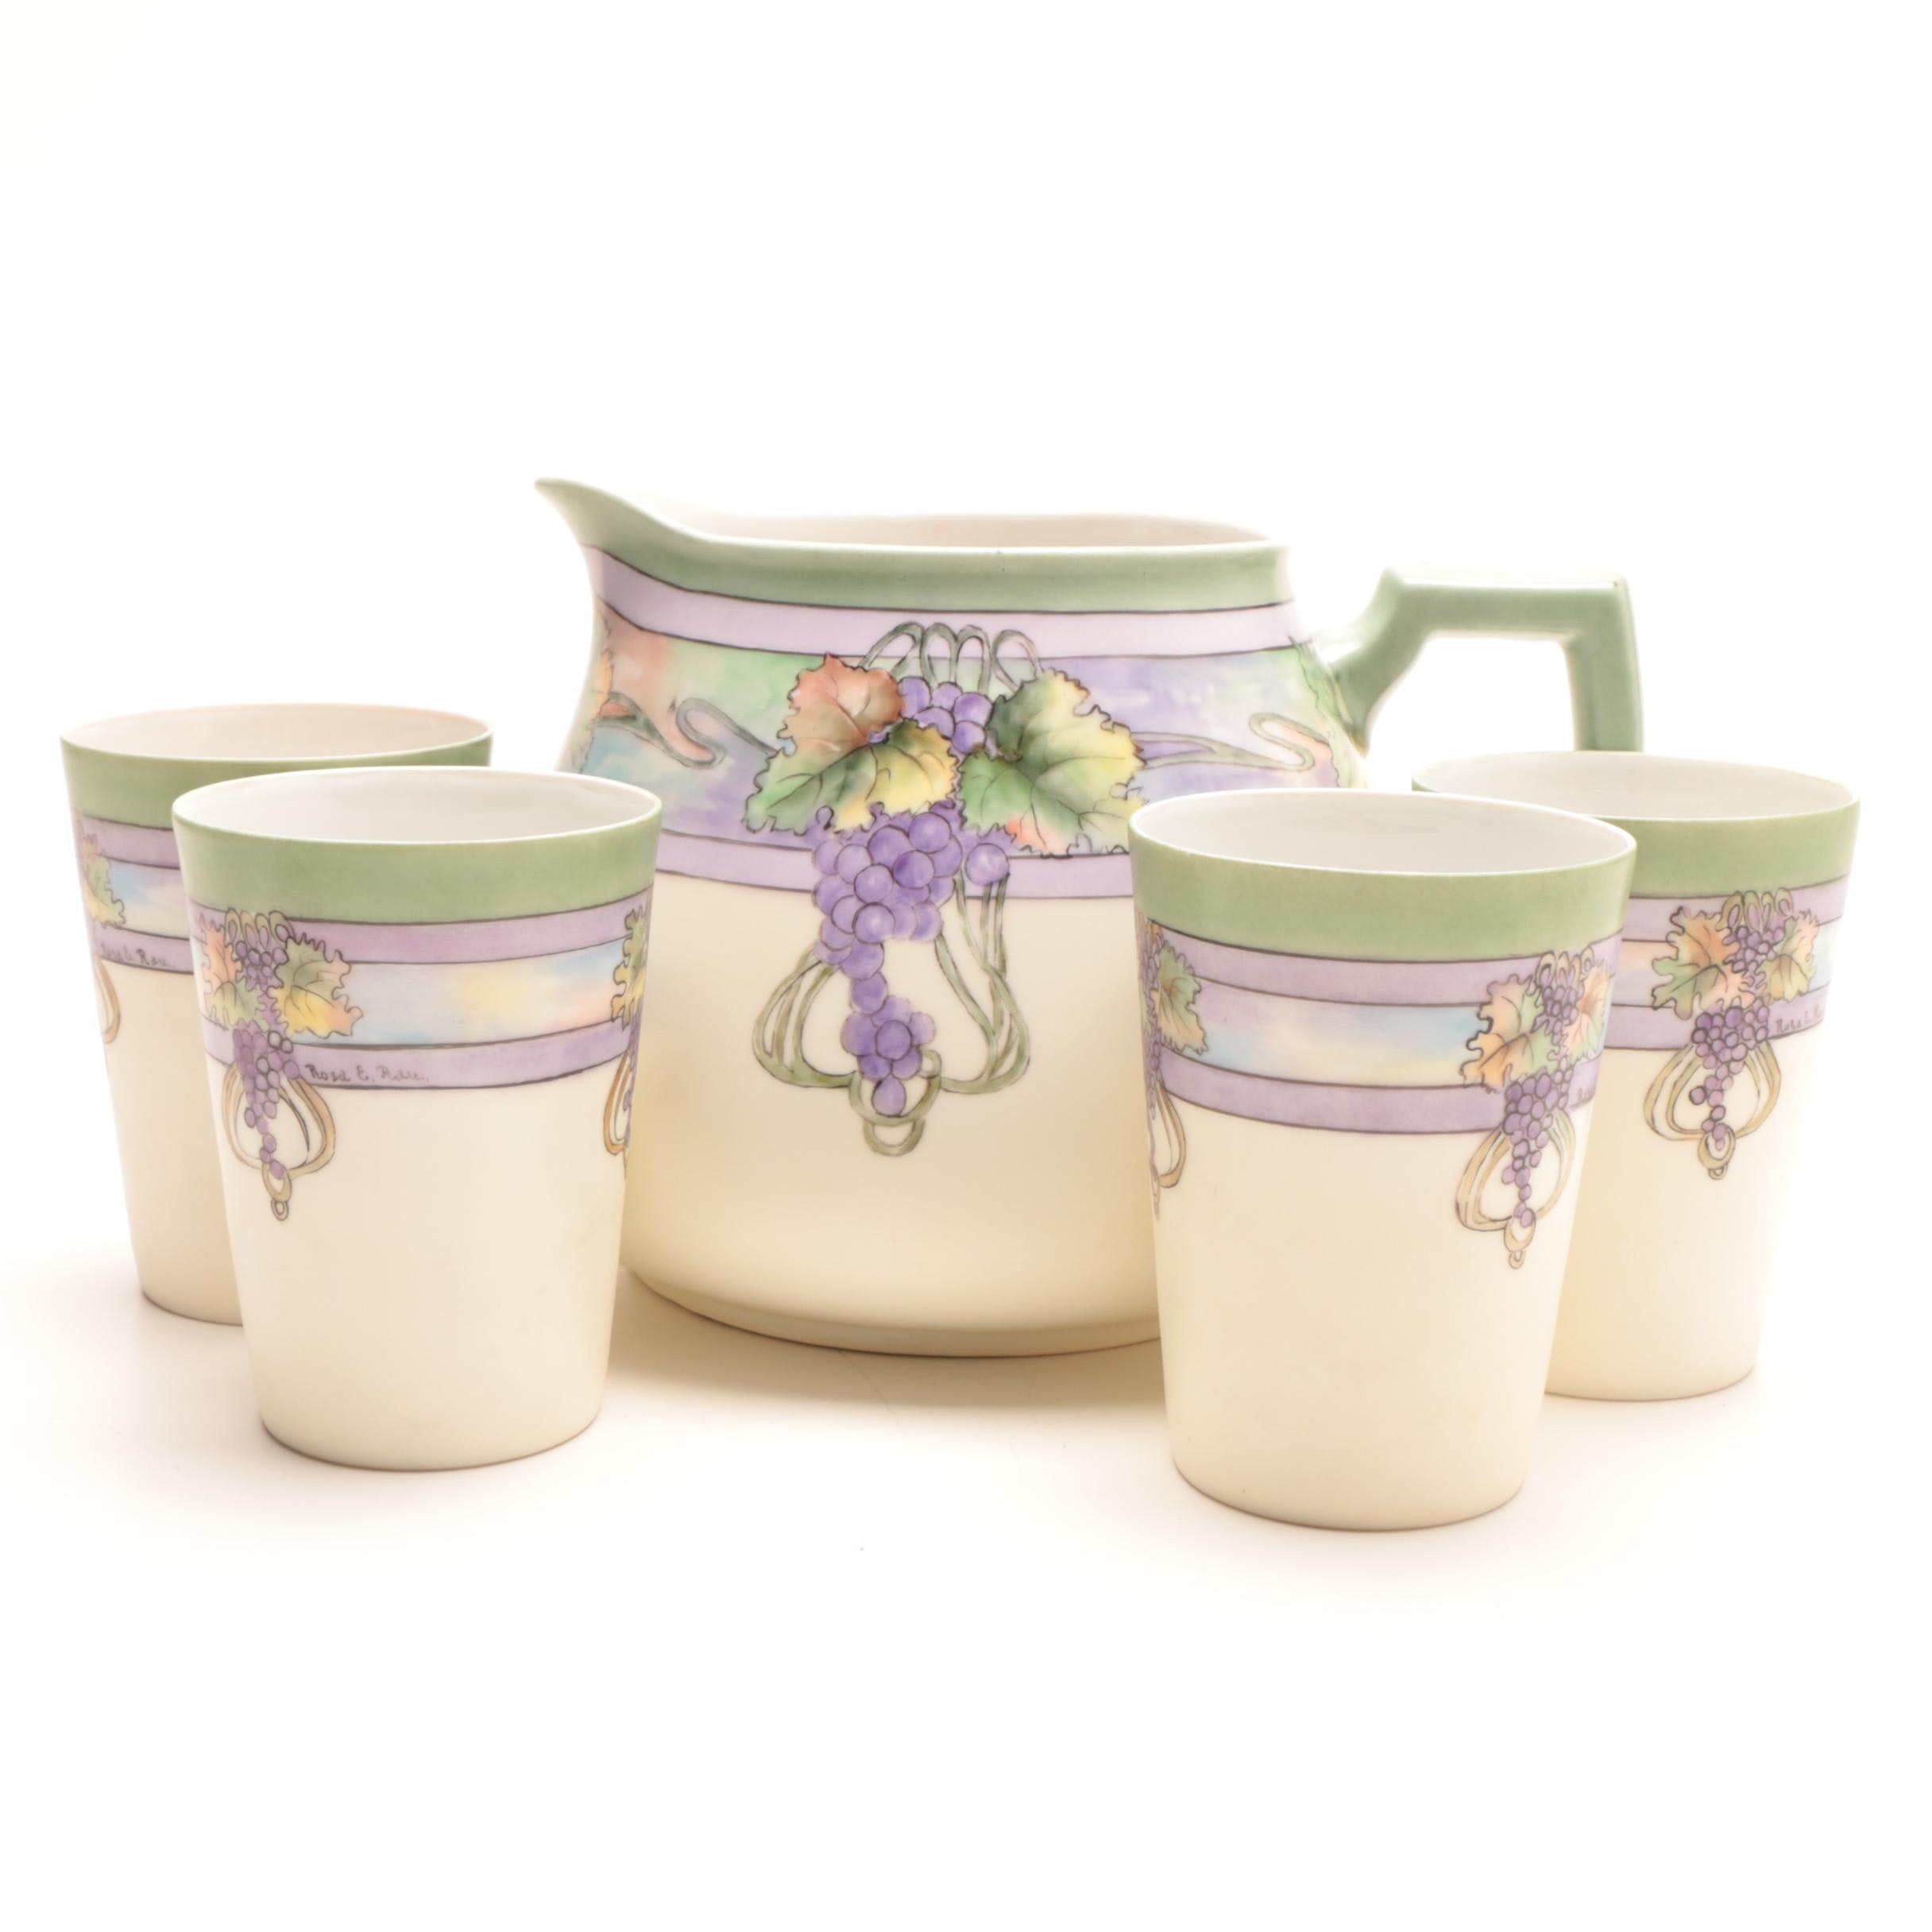 Z.S. & Co Bavaria Hand-Painted Hobbyist Porcelain Lemonade Pitcher and Cups